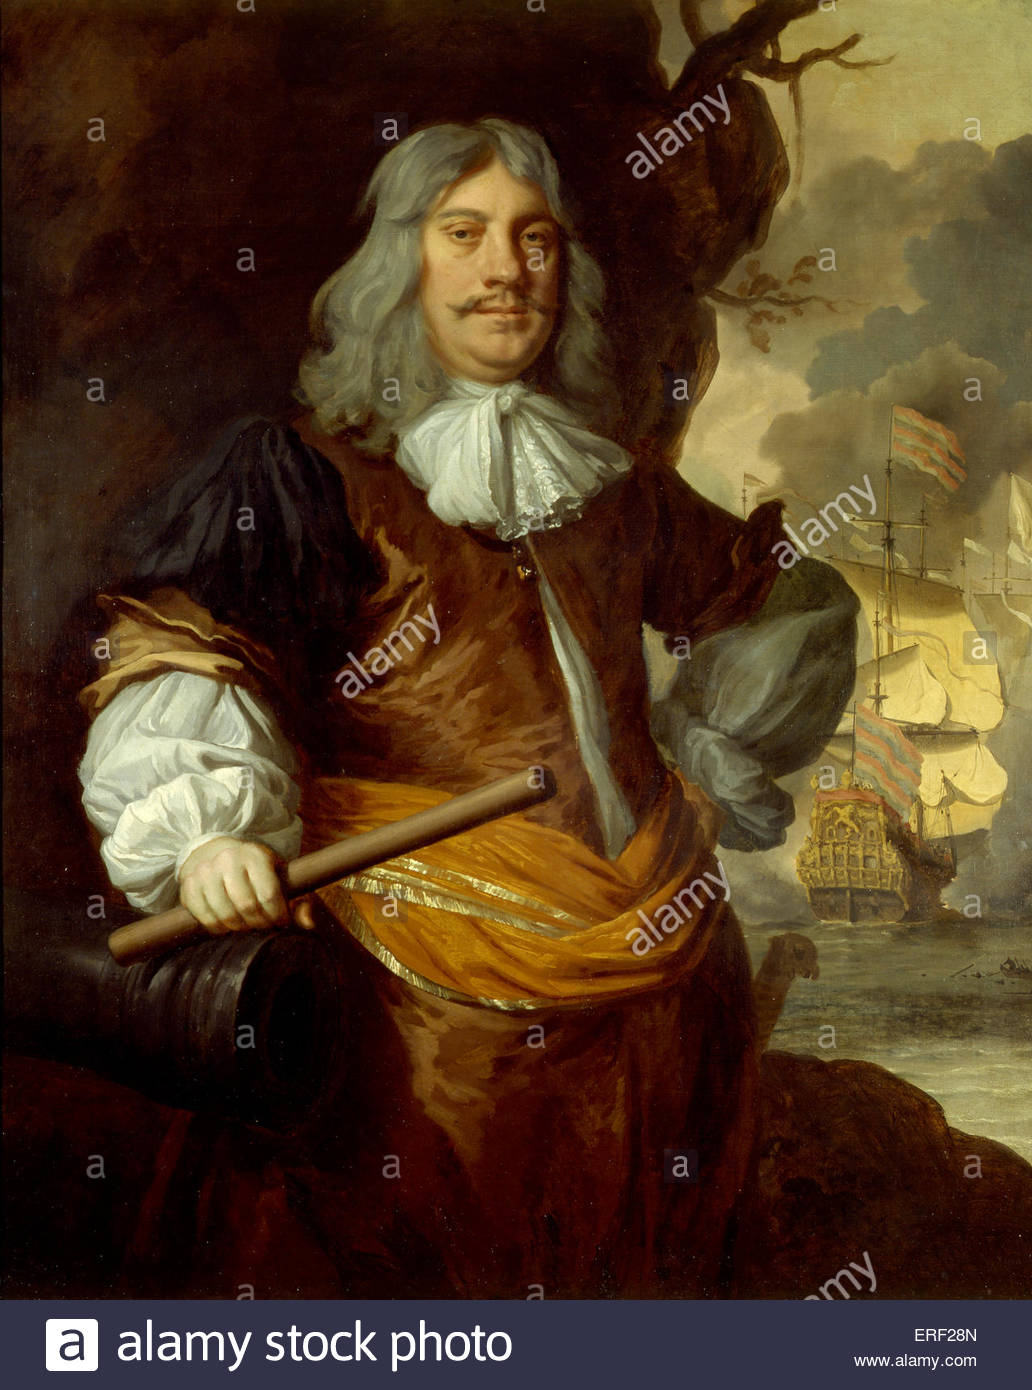 Sir Cornelis Maartenszoon Tromp, 1st Baronet, by Peter Lely, c. 1675. Dutch naval officer who fought in Anglo-Dutch - Stock Image